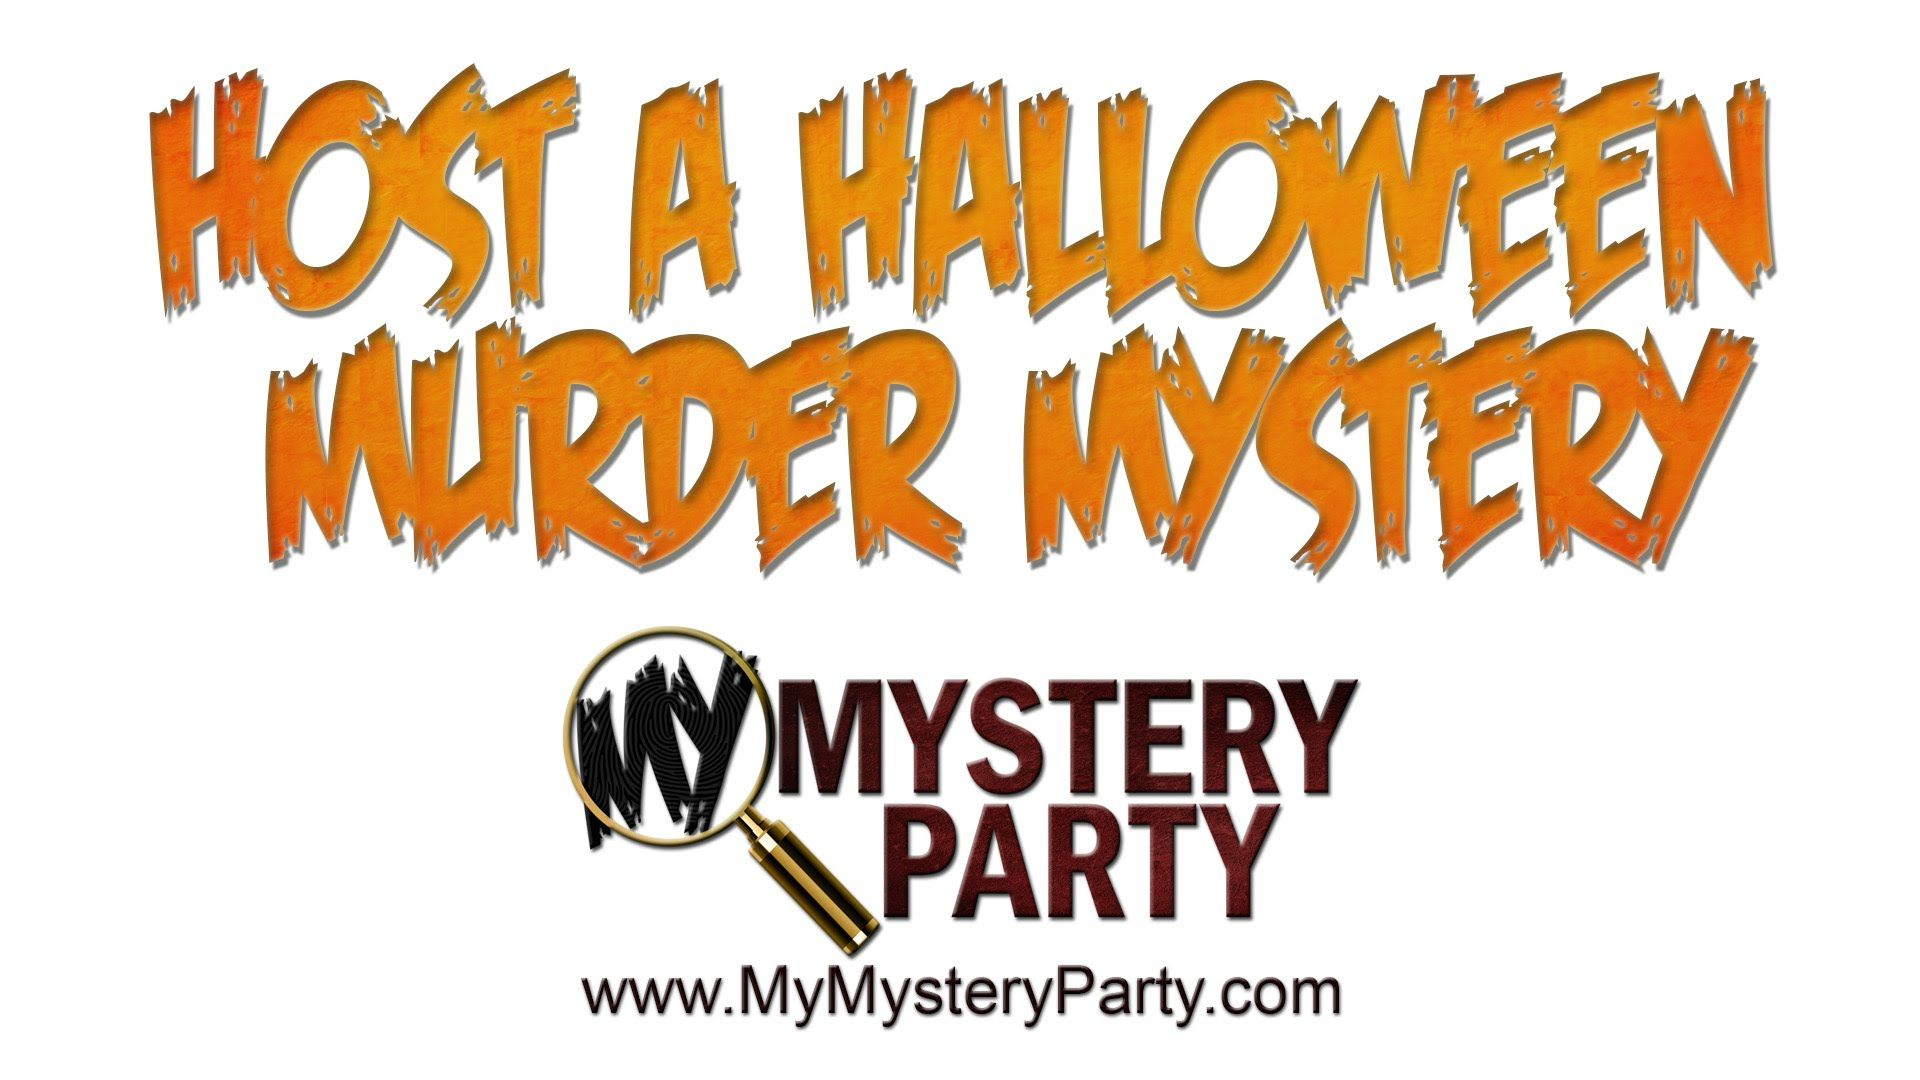 host a murder mystery party for halloween with my mystery party at